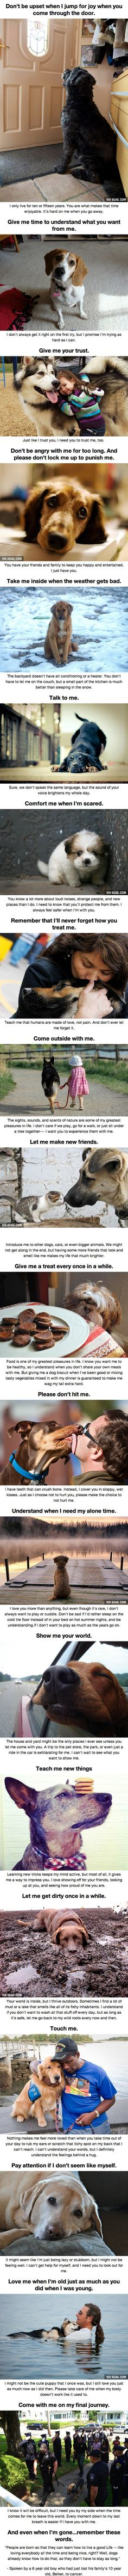 This makes me have tears. I love animals. My dogs are my closest guys. I can't imagine my life without them and I don't think I'll be able to get another after my babies. Losing them will hurt too much.